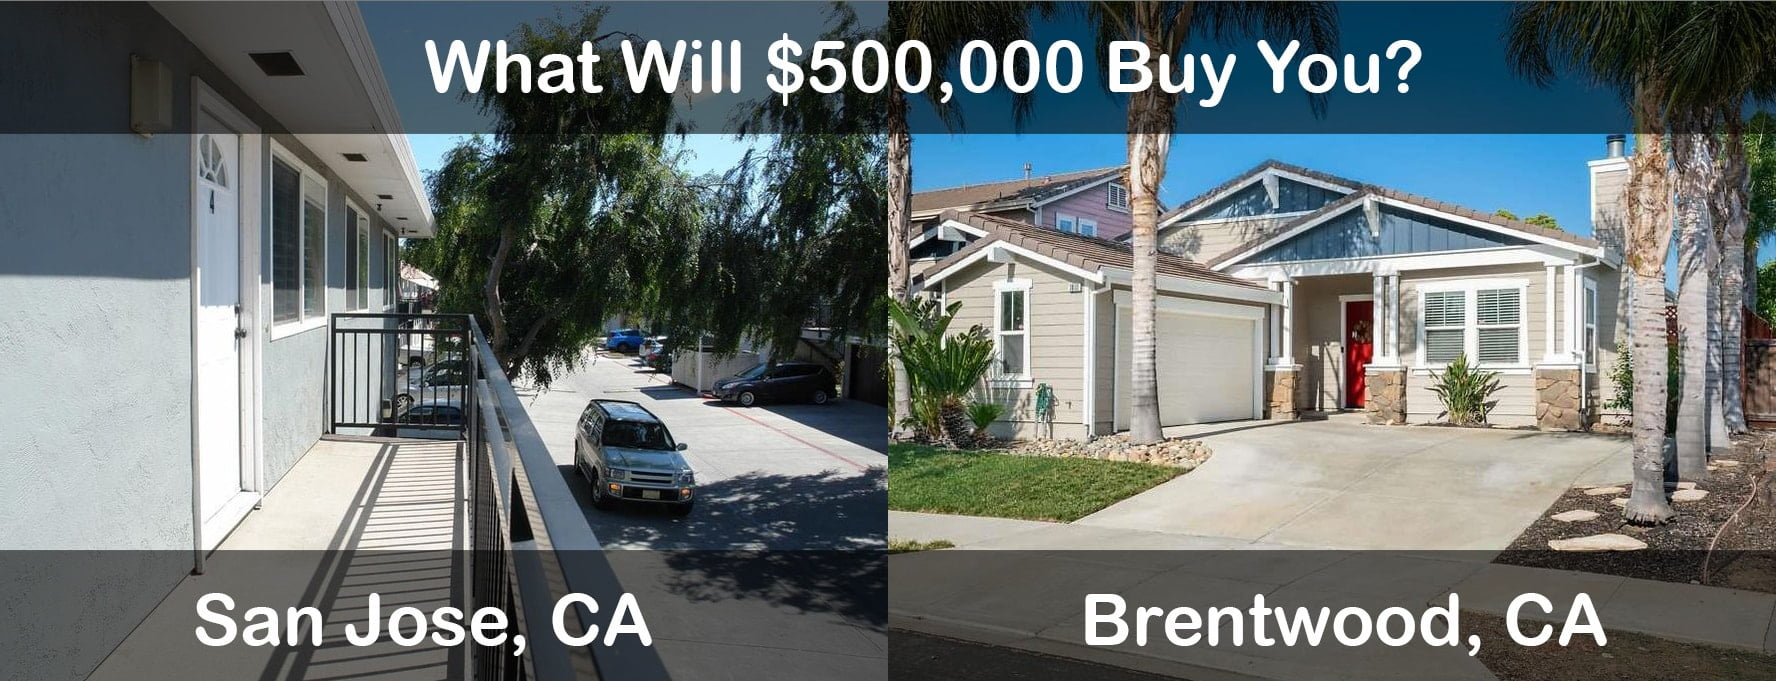 What Kind of House $500,000 Will Buy You In Brentwood, CA vs. San Jose, CA